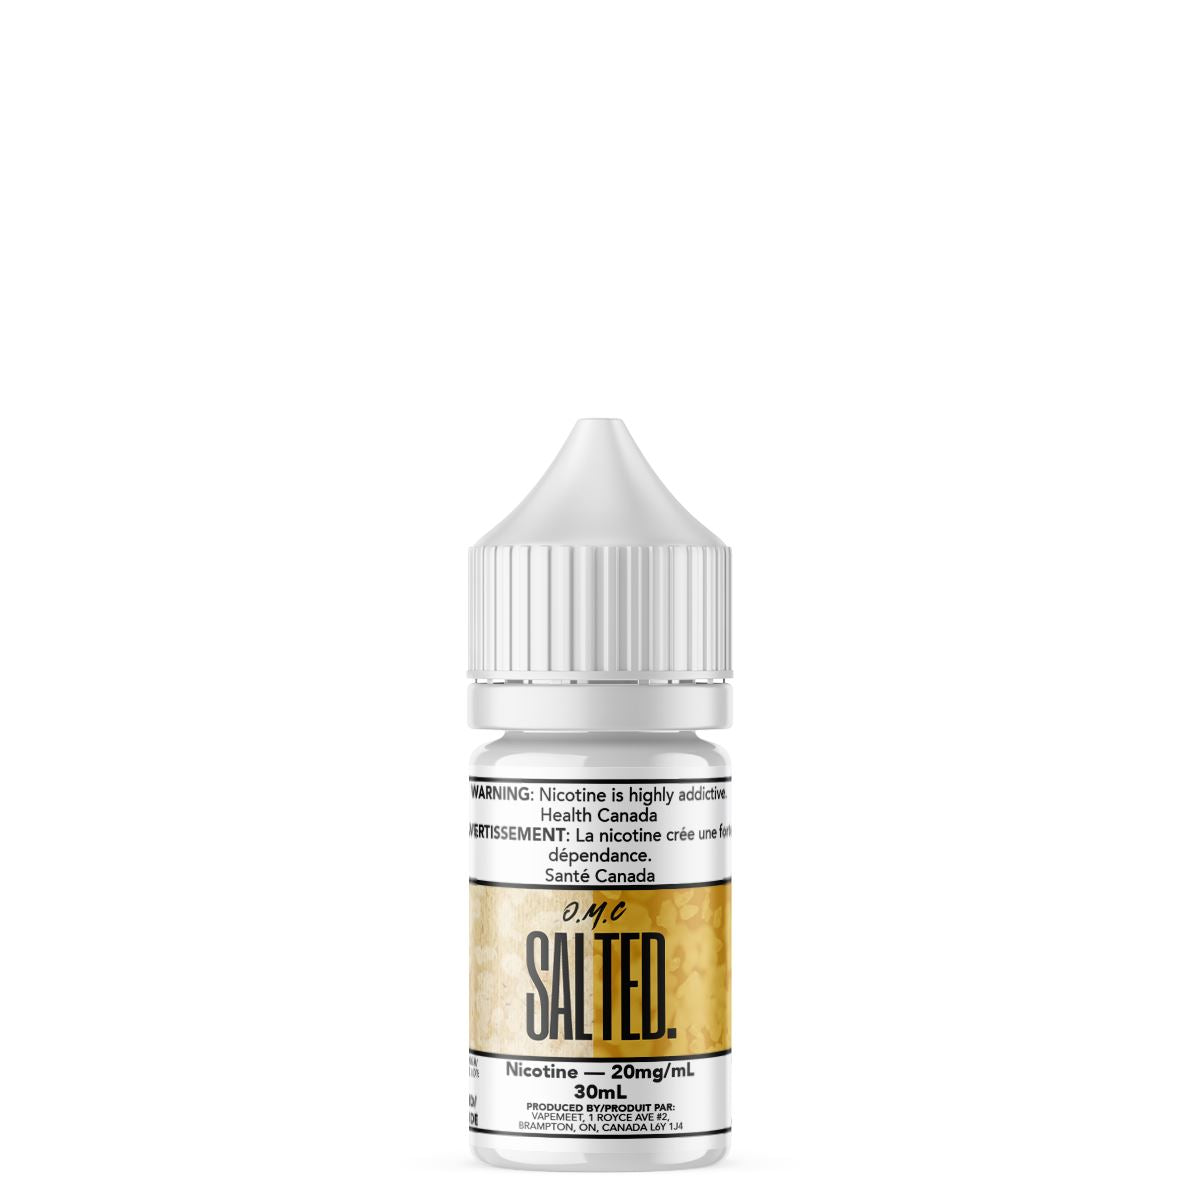 Salted. - OMC E-Liquid Salted. 30mL 20 mg/mL